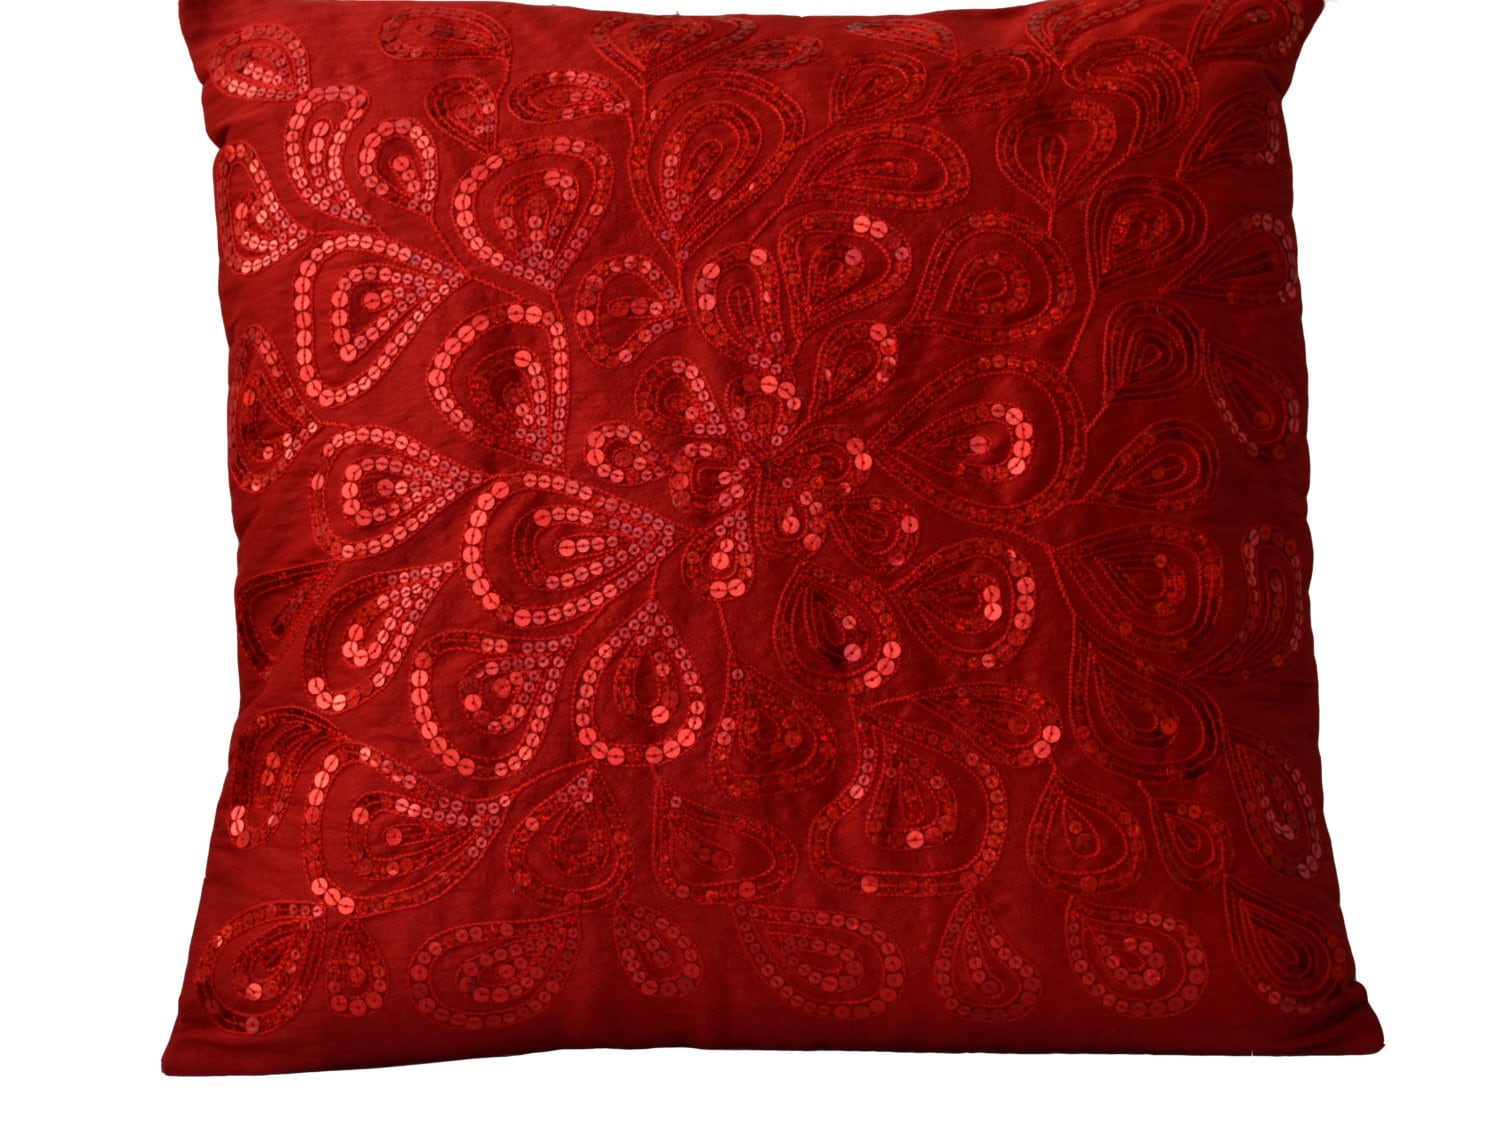 Throw Pillows Red Sequins Decorative Silk Pillow Cover